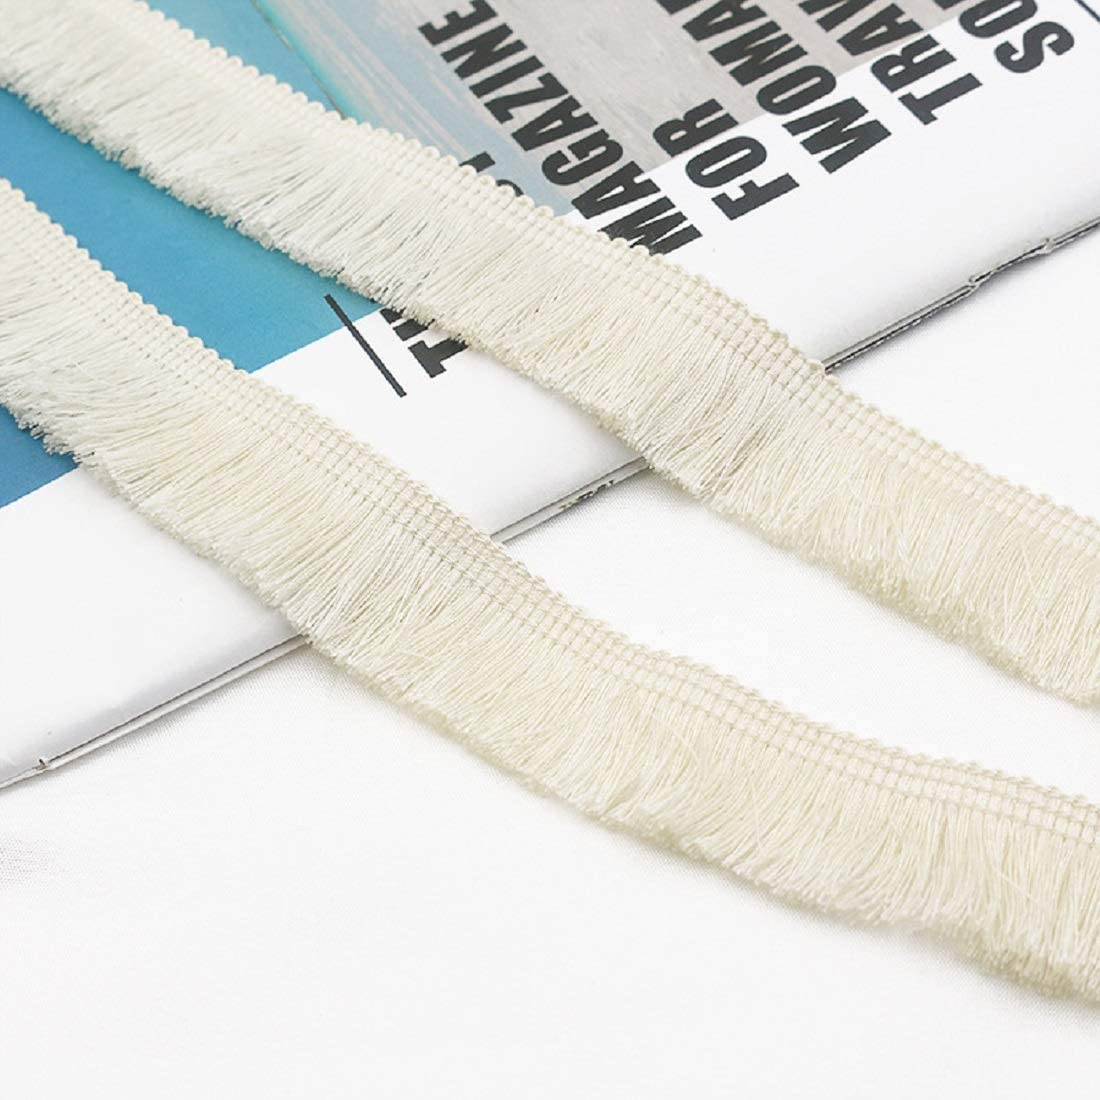 Beige Yalulu 25 Meter X 1 Inch Wide Fringe Tassel Trim Fabric Ribbon DIY Sewing Accessory Lace for Curtain Clothes Home Decoration